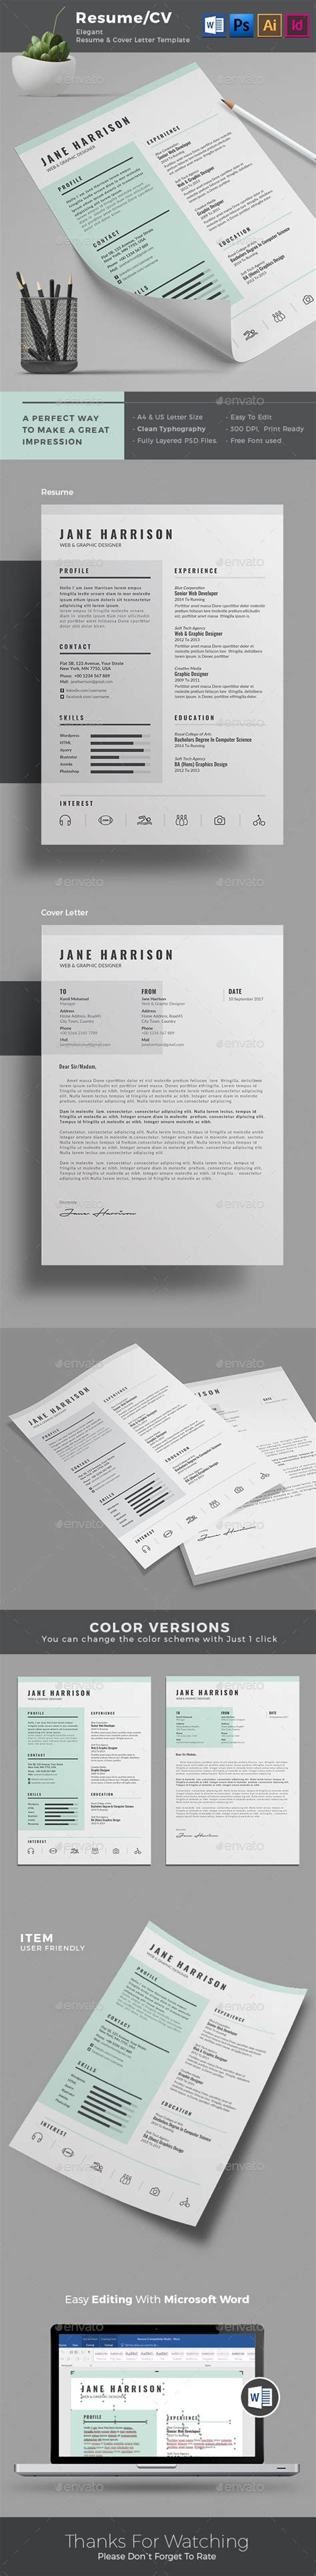 design cv size 17 best images about design resumes on pinterest